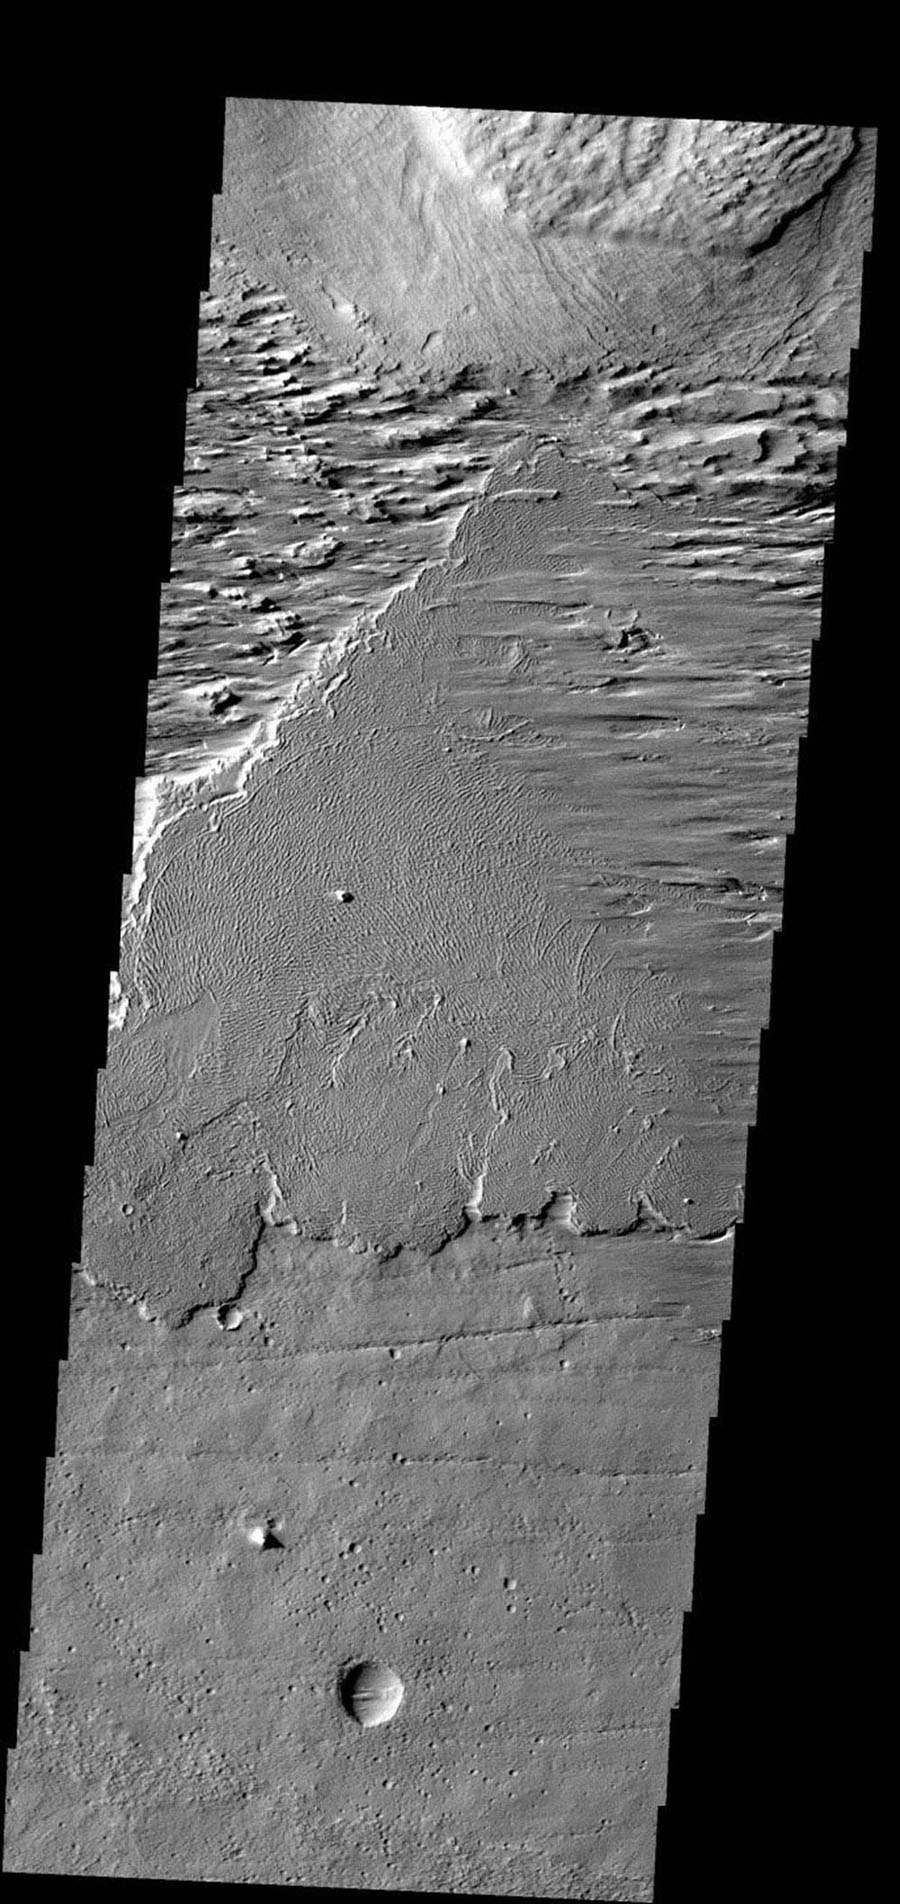 This image shows a region near Olympus Mons on Mars where wind has been moving loose material across the lava flows in the center of the image from NASA's 2001 Mars Odyssey.